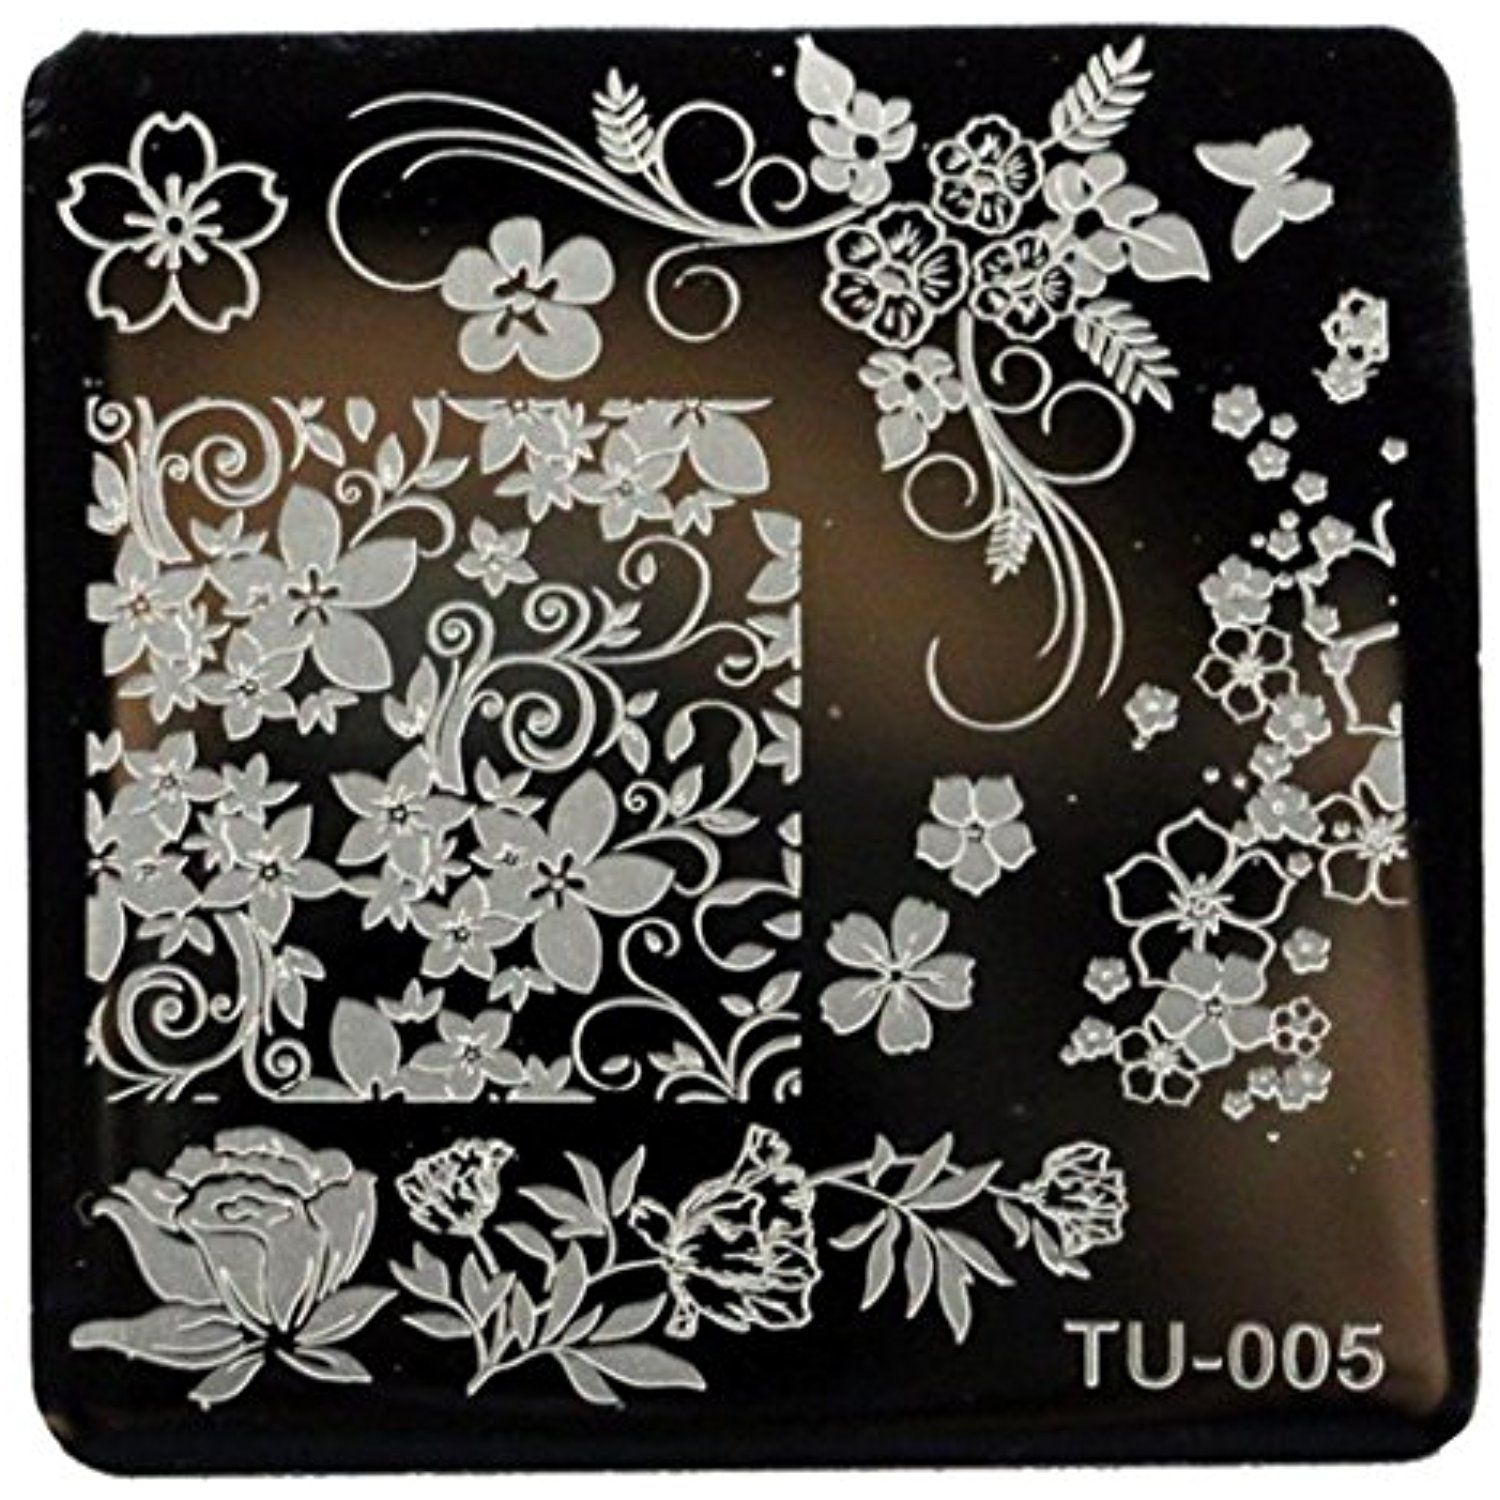 Creazy Pattern Diy Nail Art Image Stamp Stamping Plates Manicure Template Tu 005 Read More